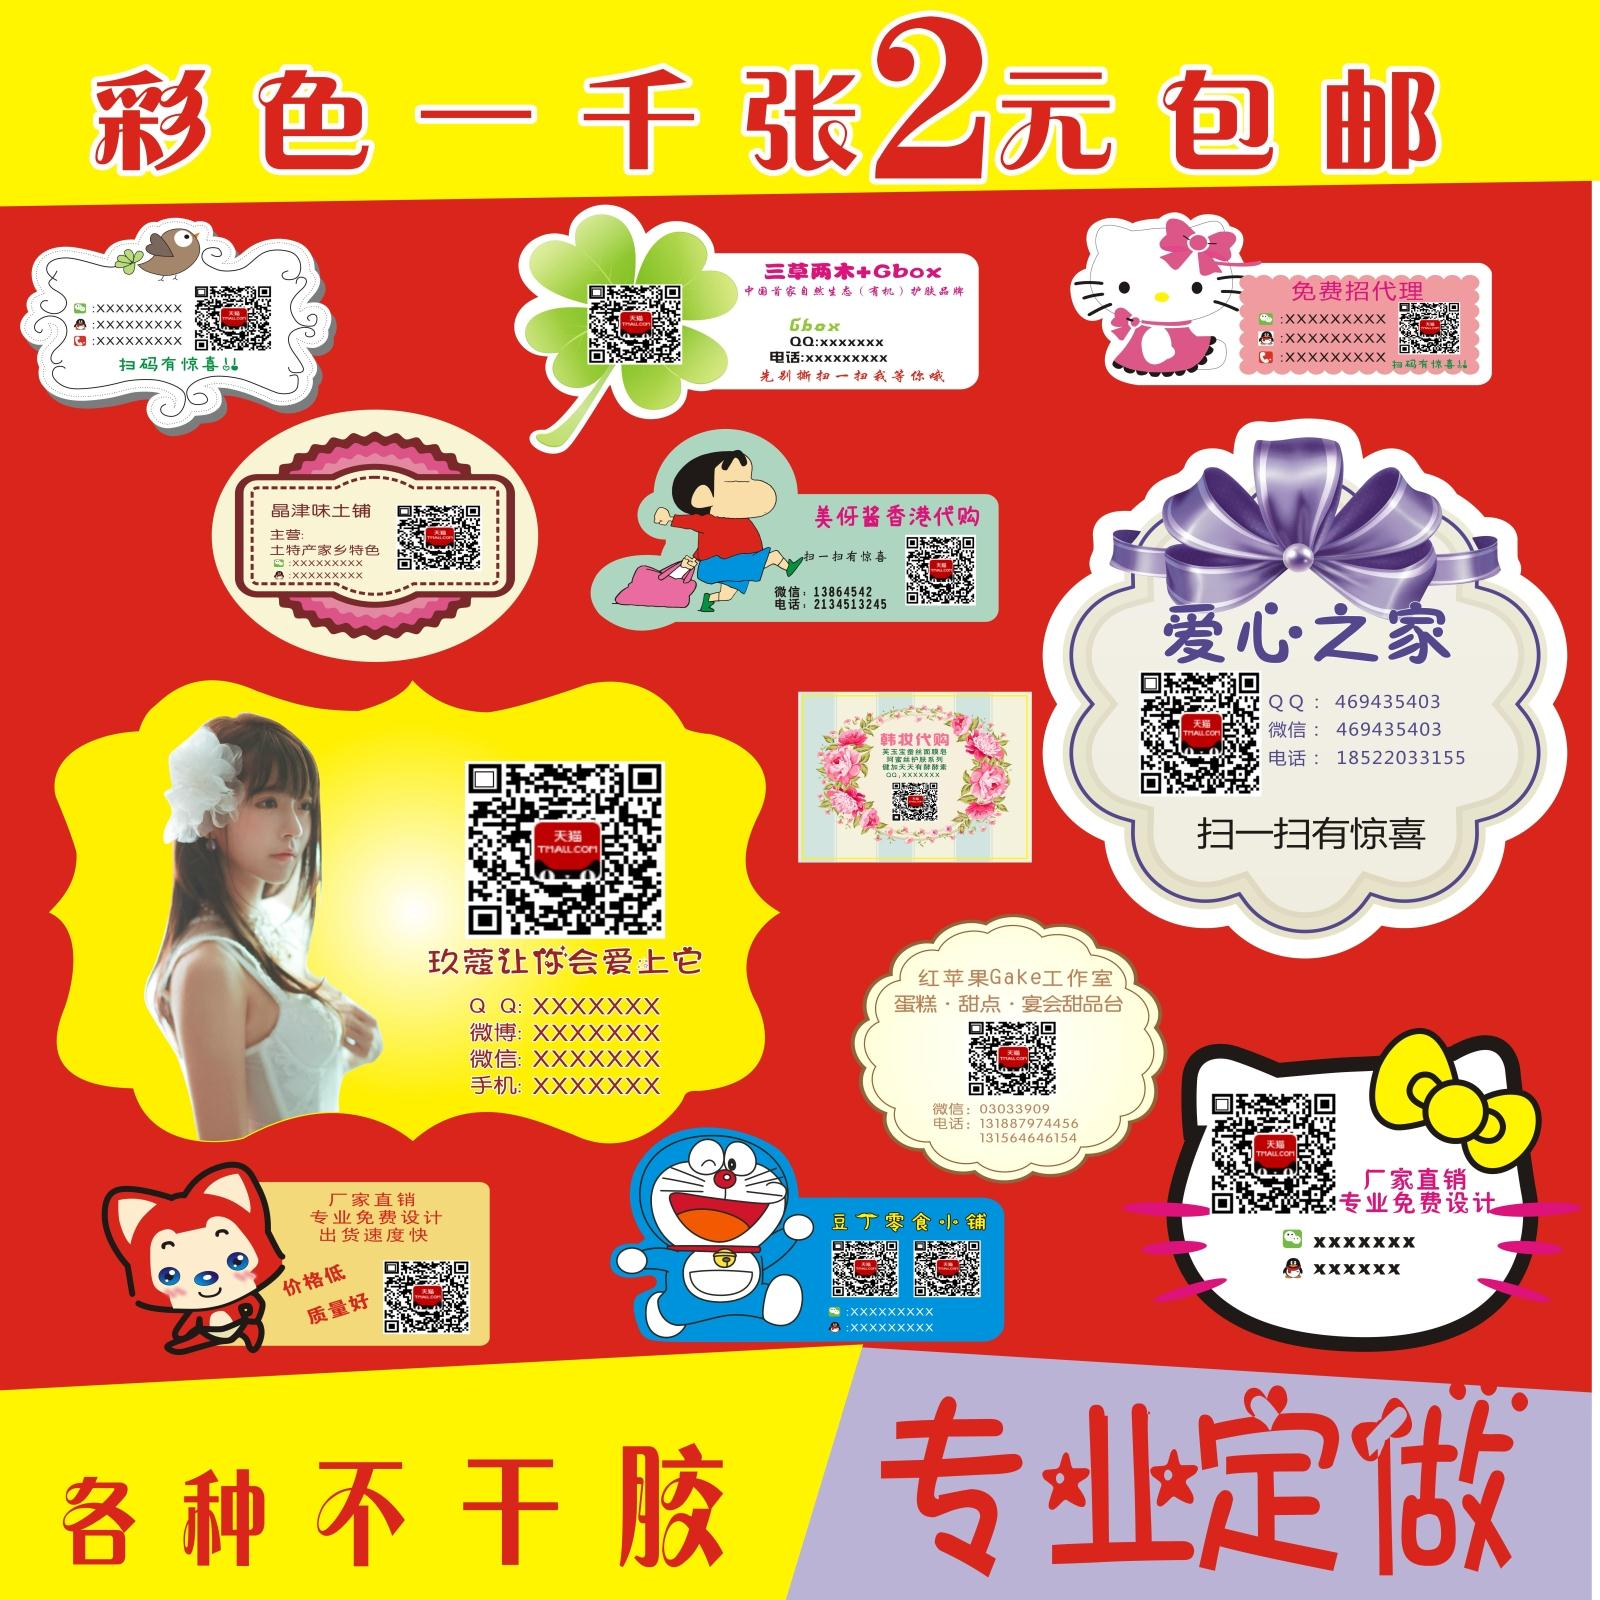 Wechat dimensional code stickers custom stickers transparent color stickers trademark label making custom printed